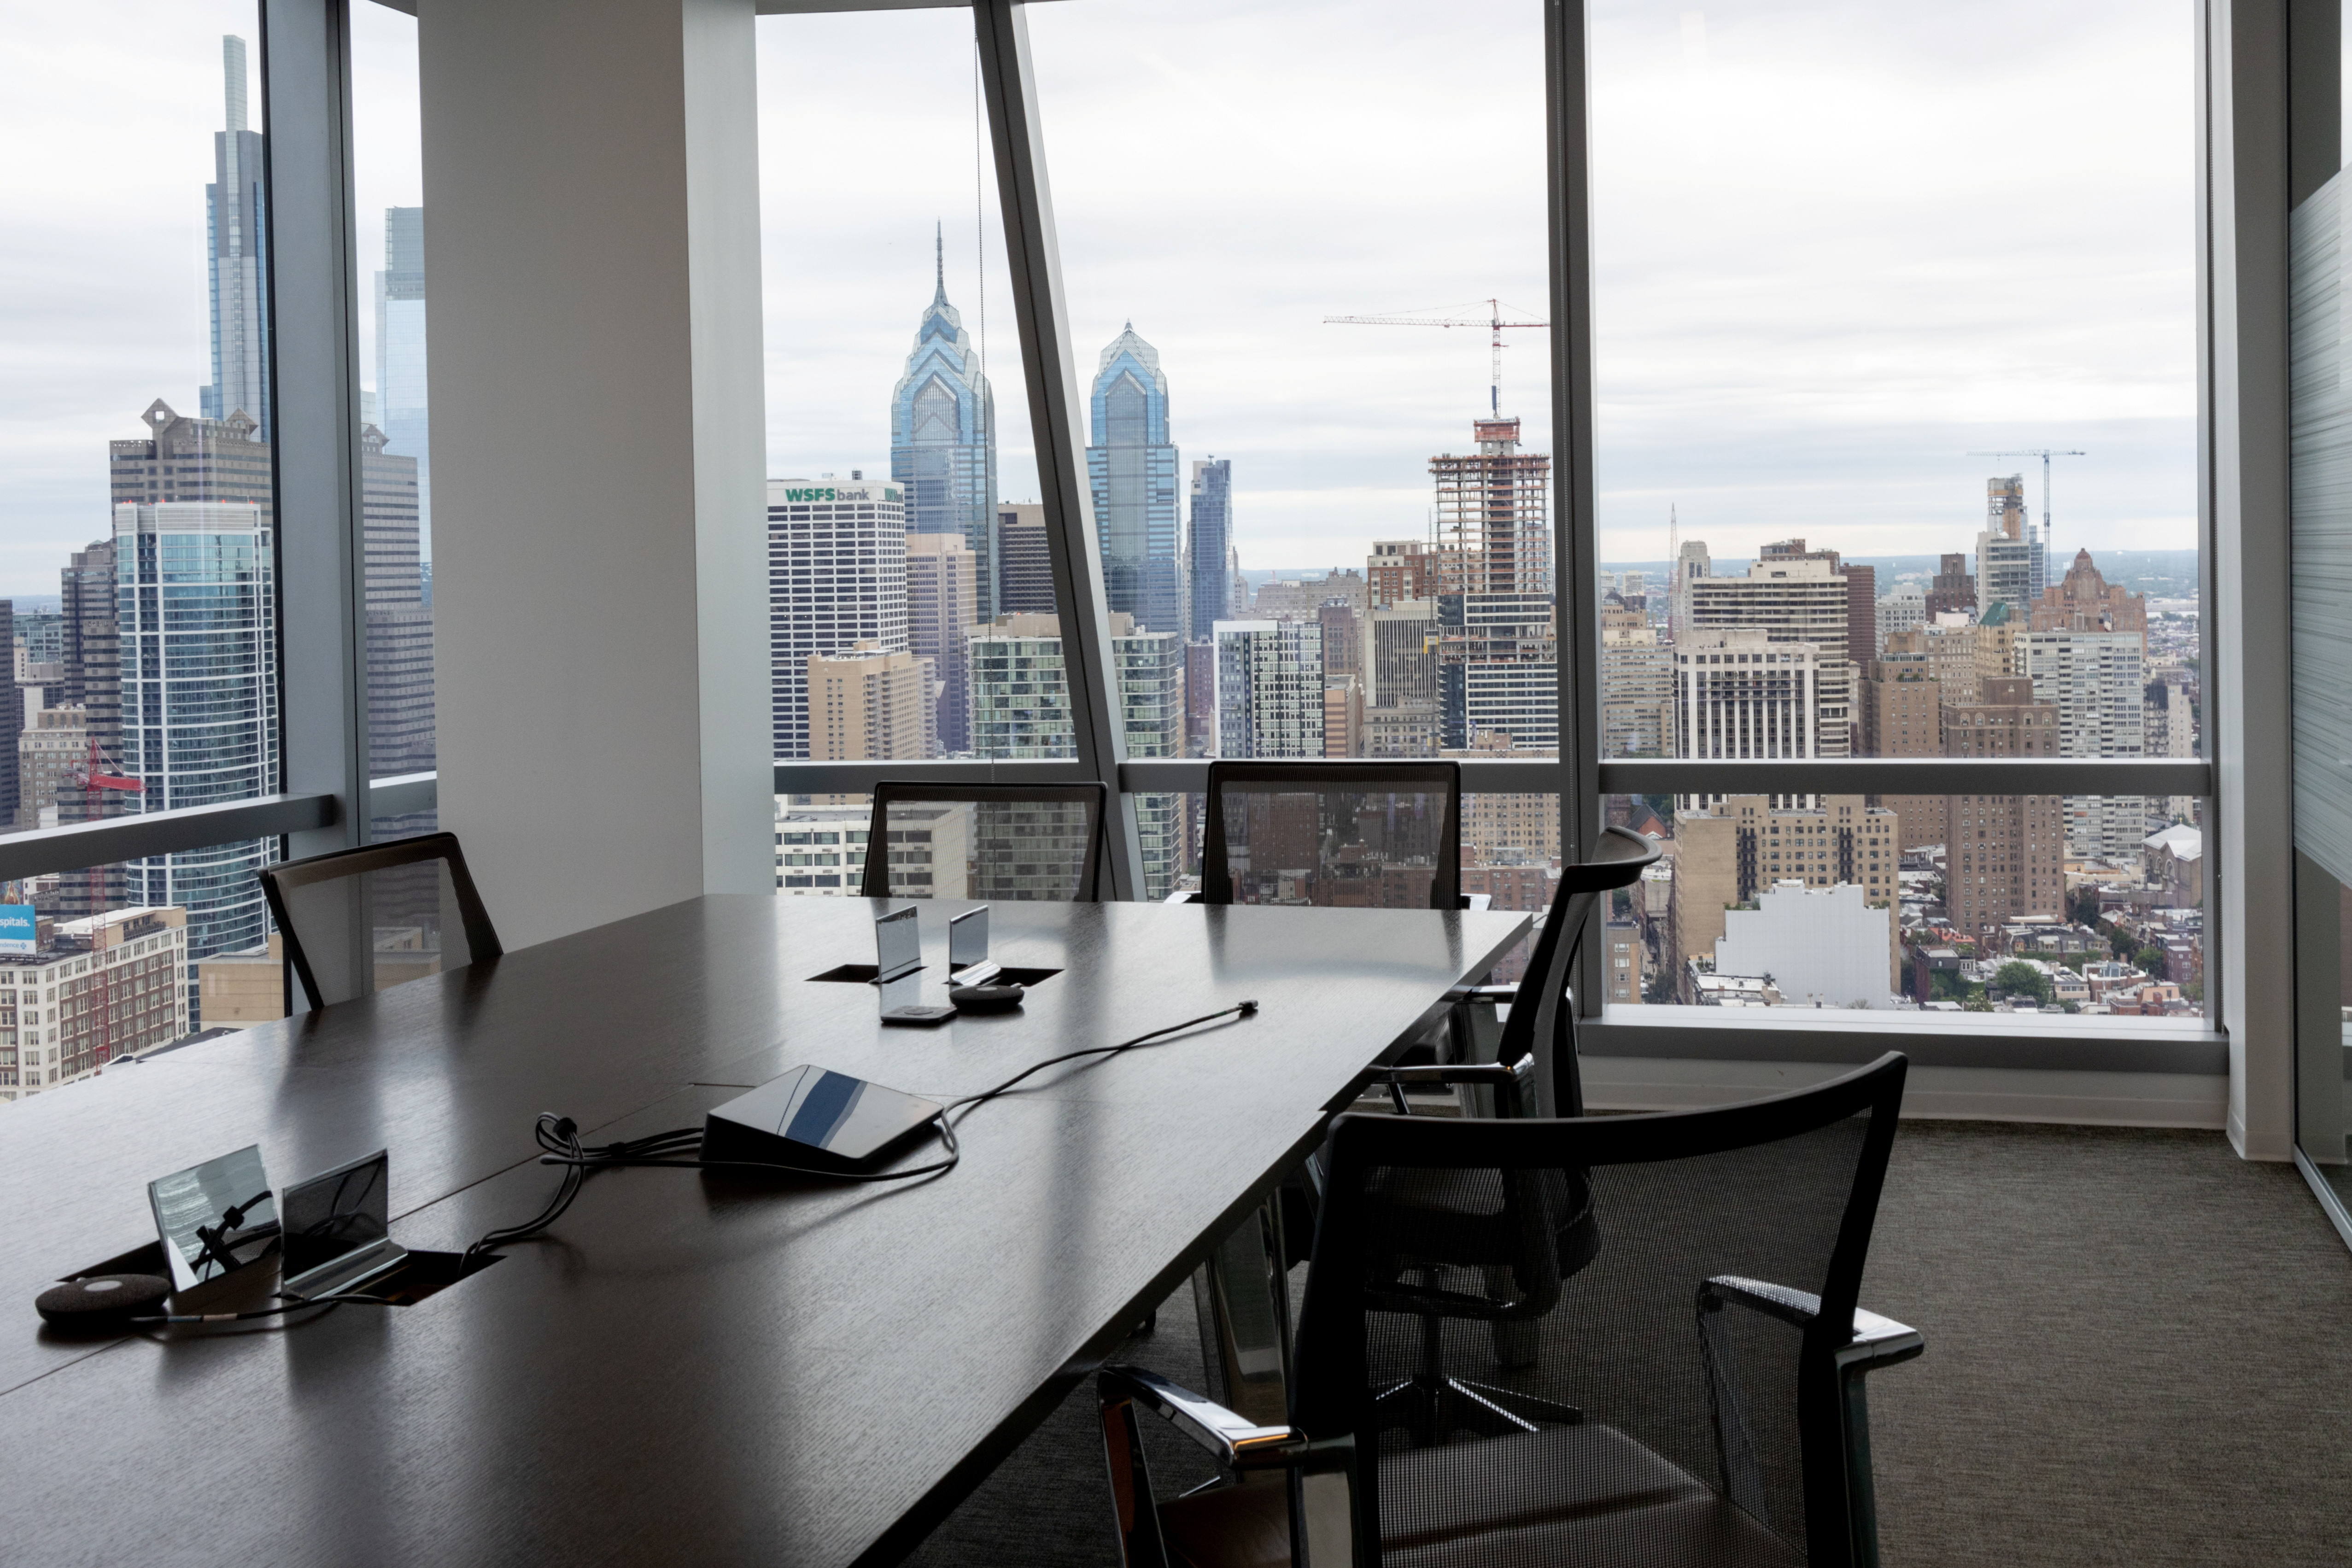 an empty office among a backdrop of city office buildings